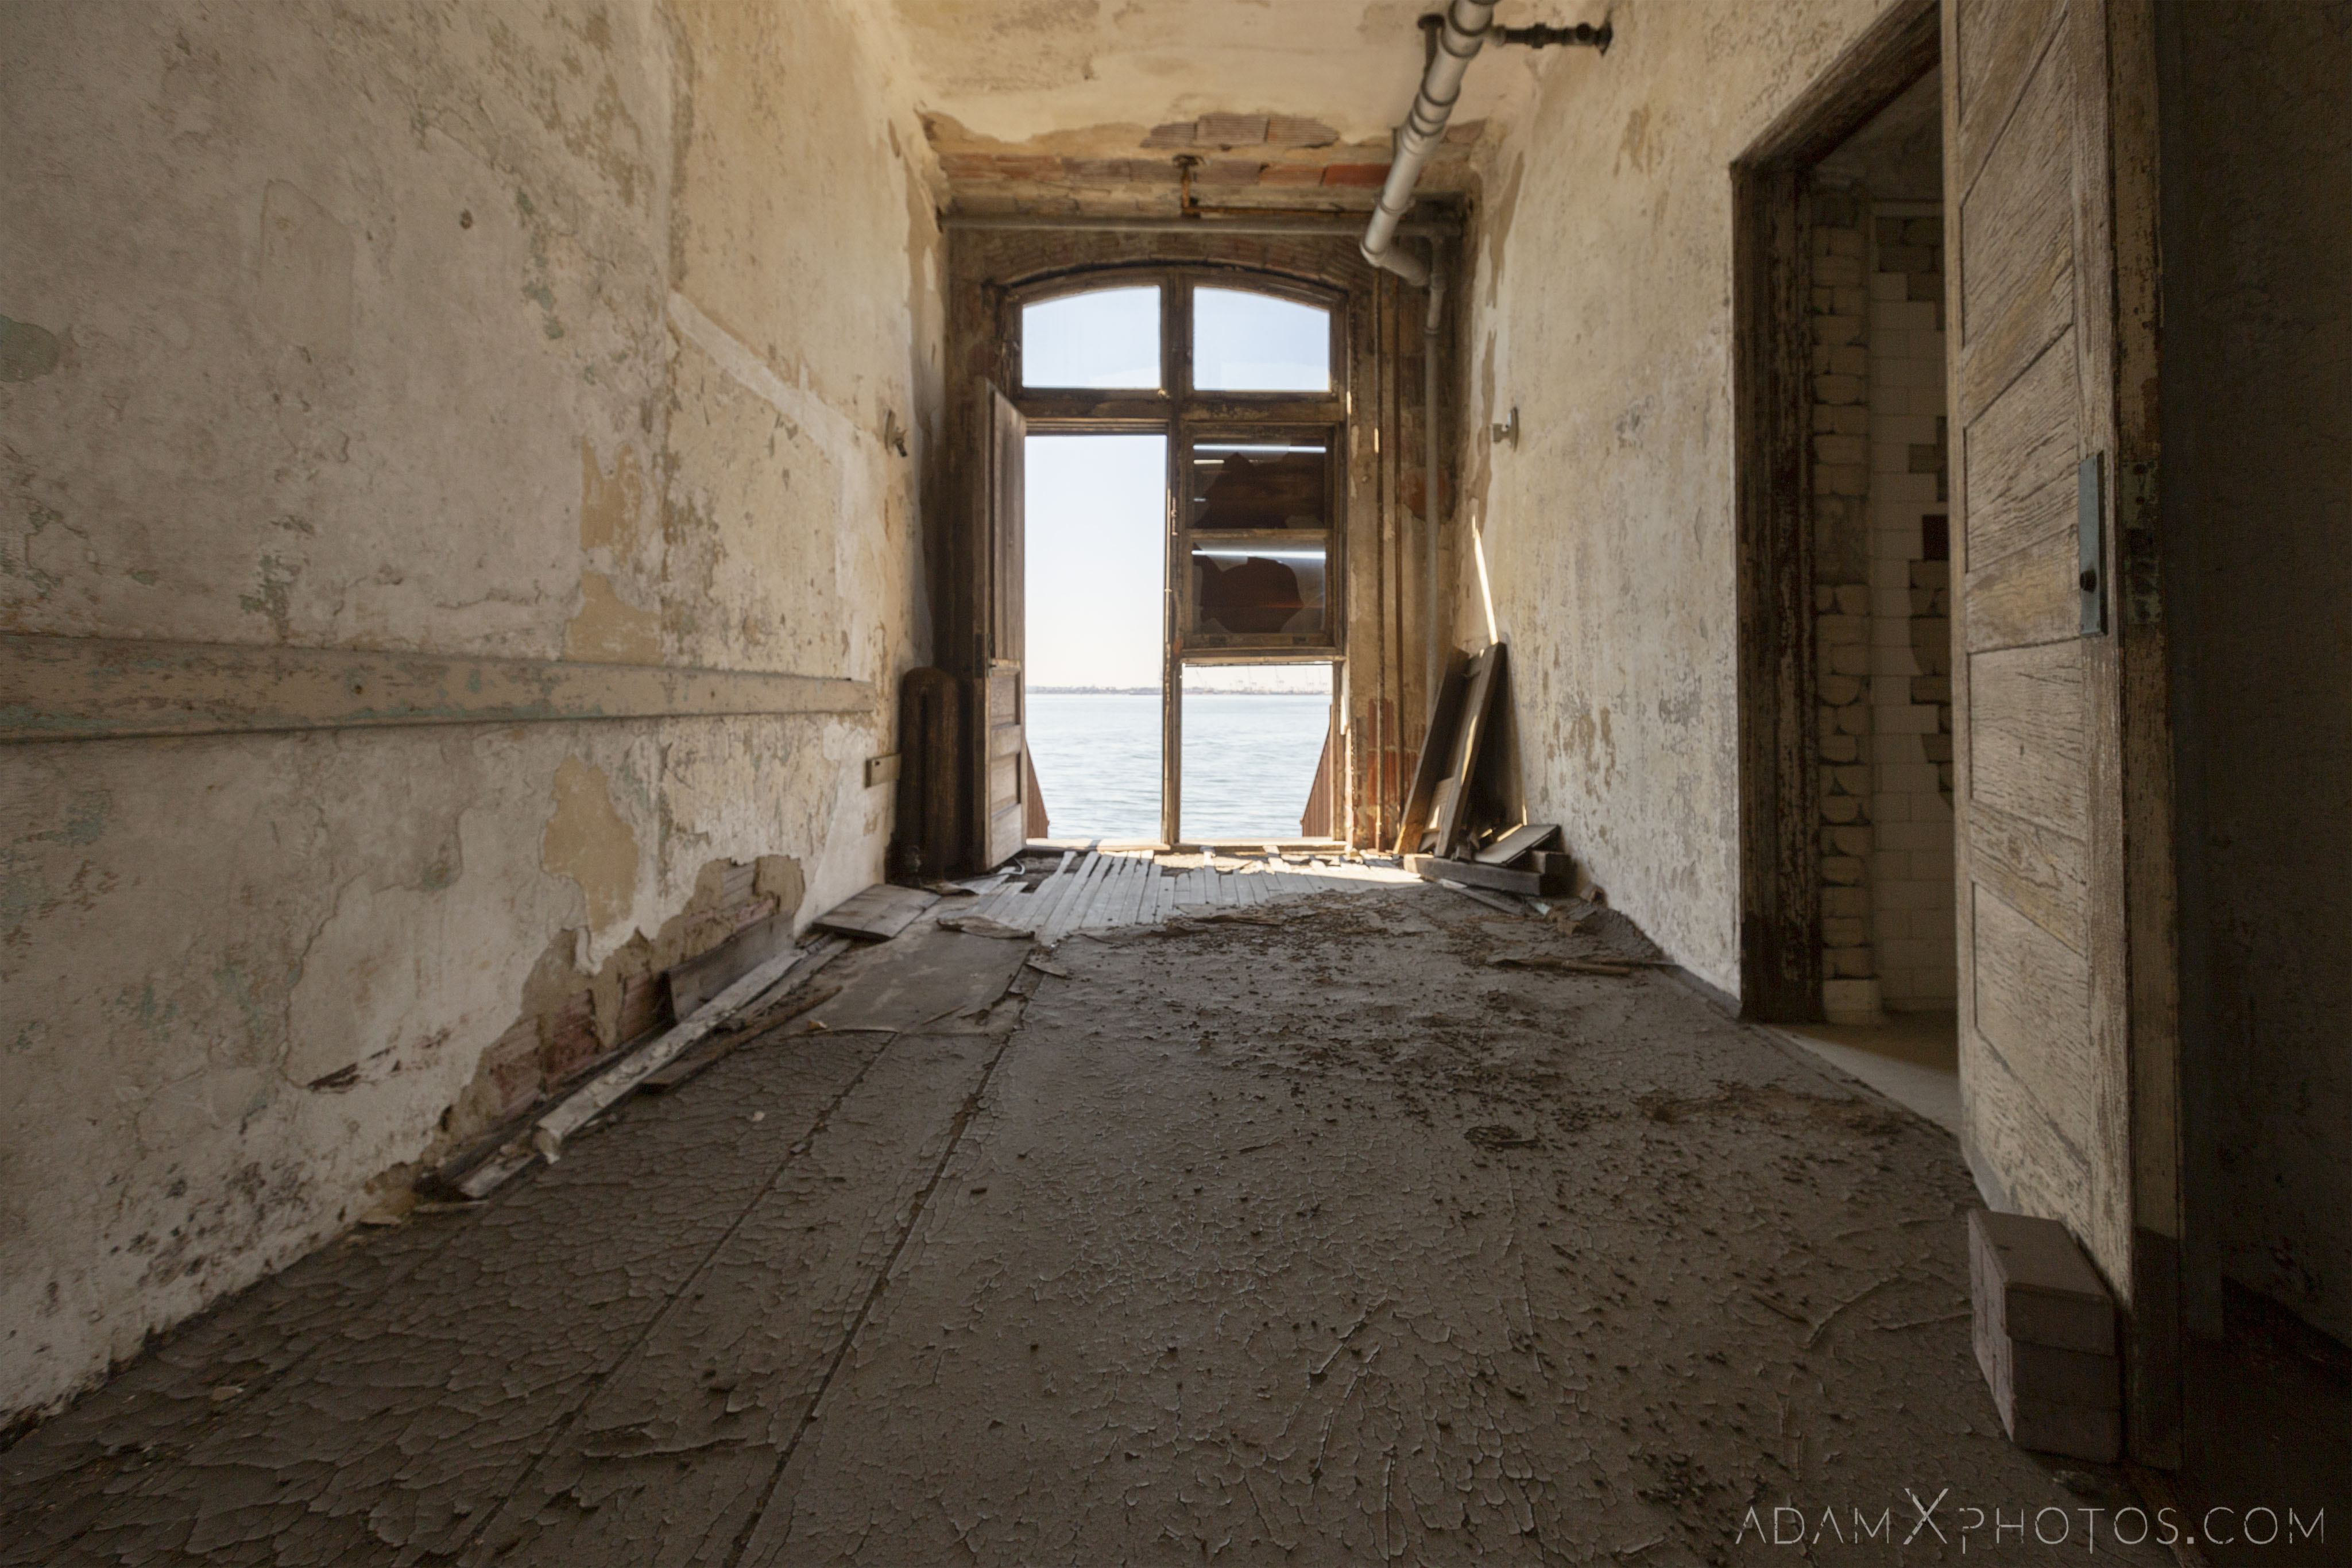 View of the sea Ellis Island Immigrant Hospital New York USPHS Hospital #43 Adam X Adamxphotos Urbex Urban Exploration Access 2017 Abandoned decay ruins lost forgotten derelict location creepy haunting eerie